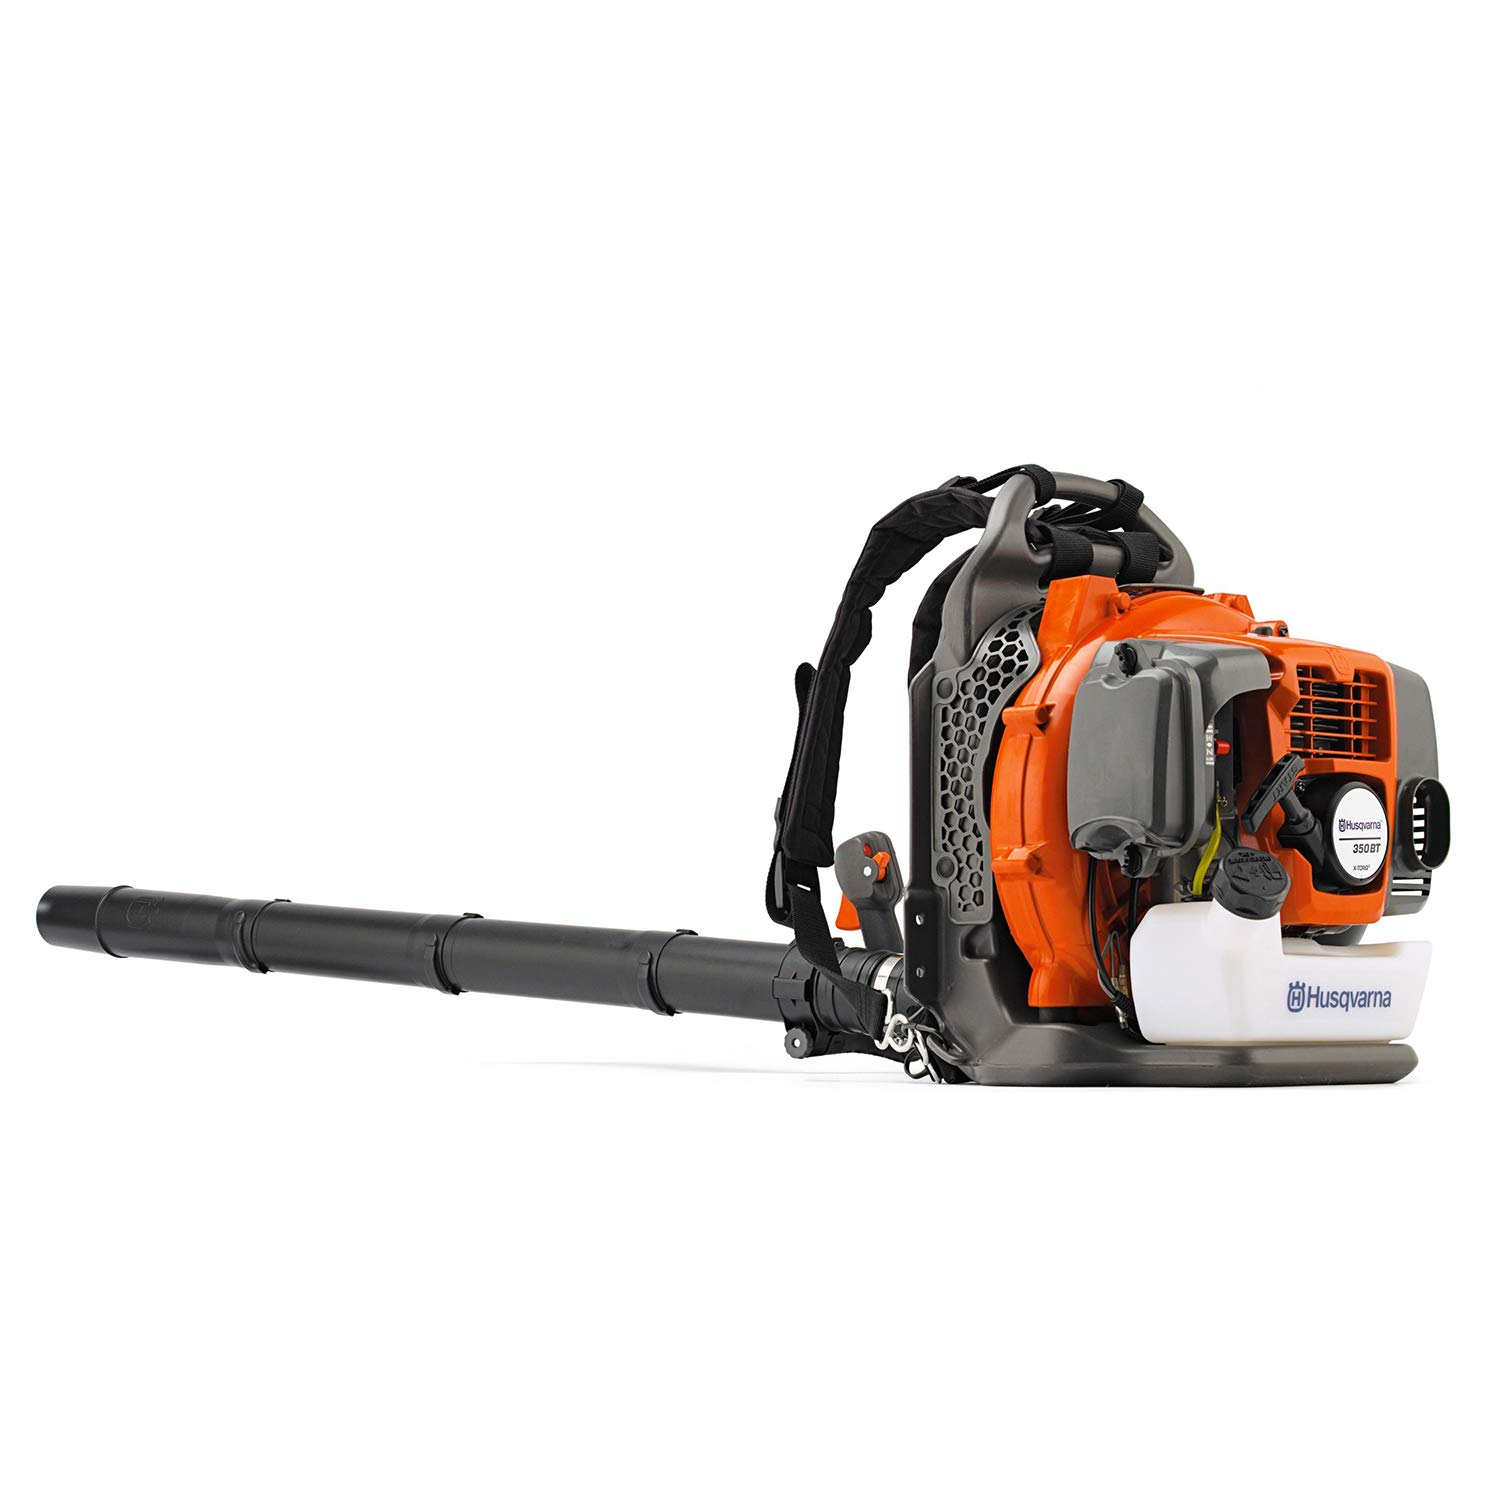 Top 10 Best Leaf Blowers (2020 Reviews & Buying Guide) 7